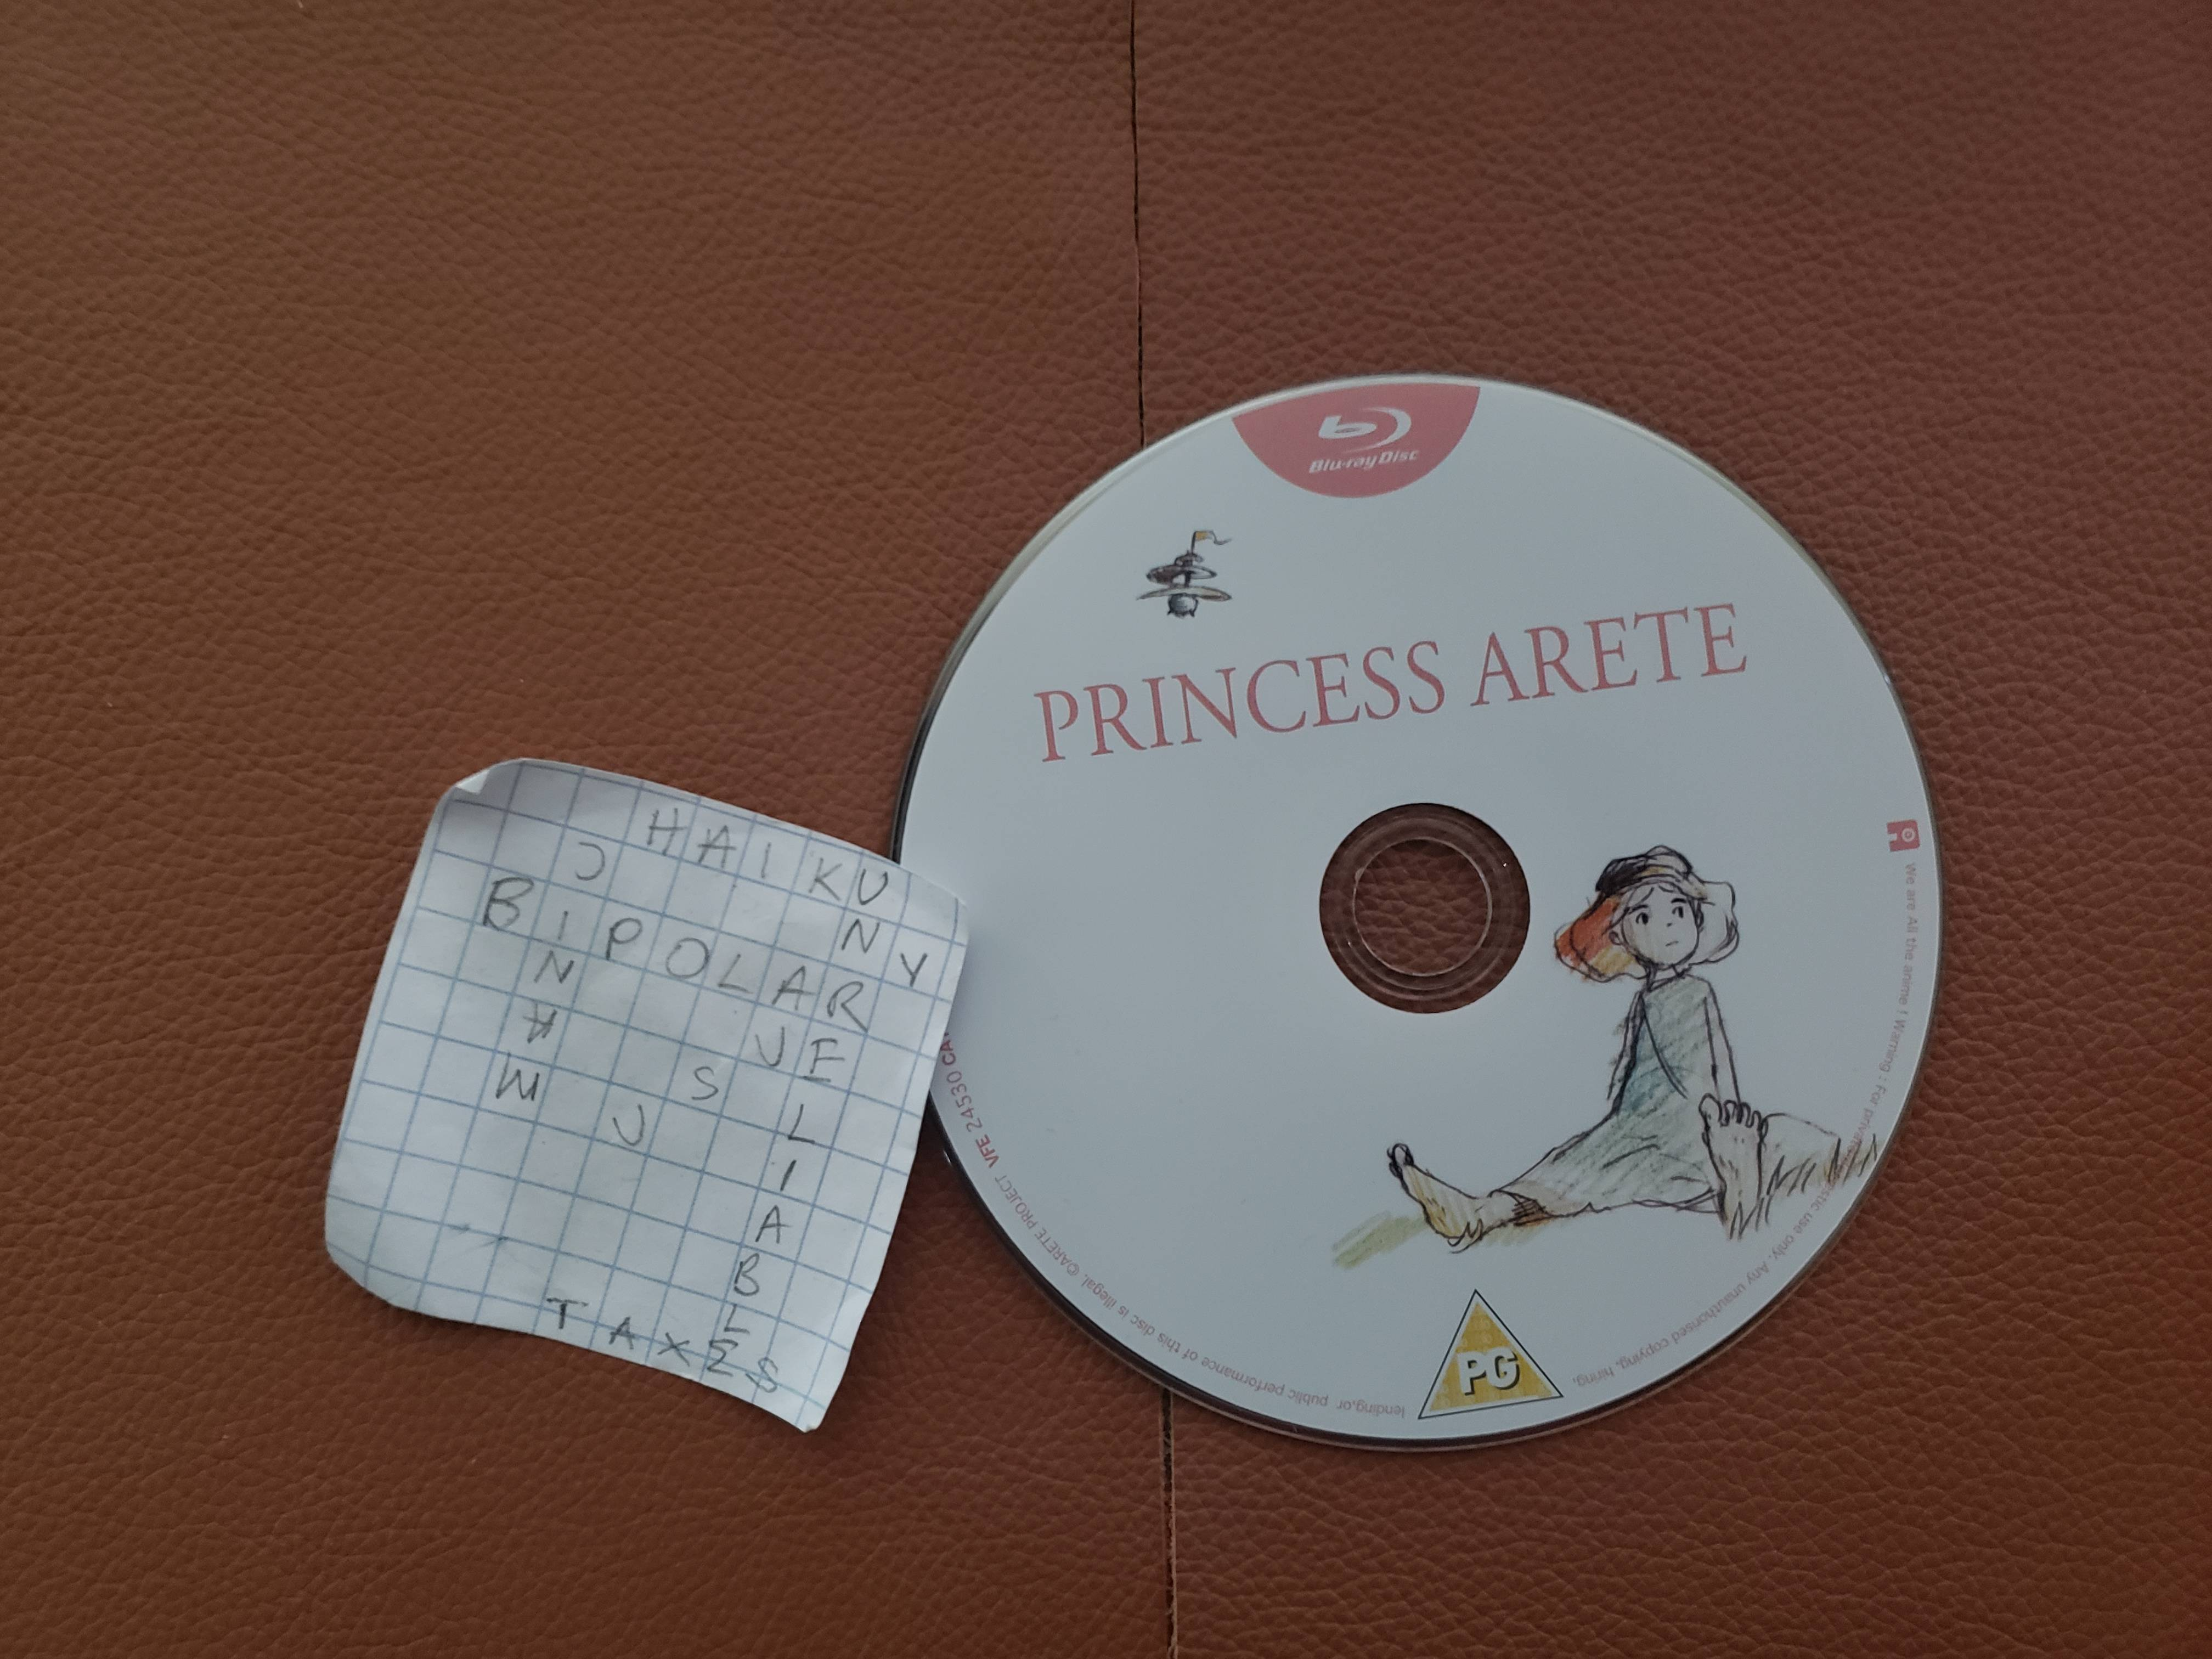 Princess Arete 2001 720p BluRay x264-HAiKU